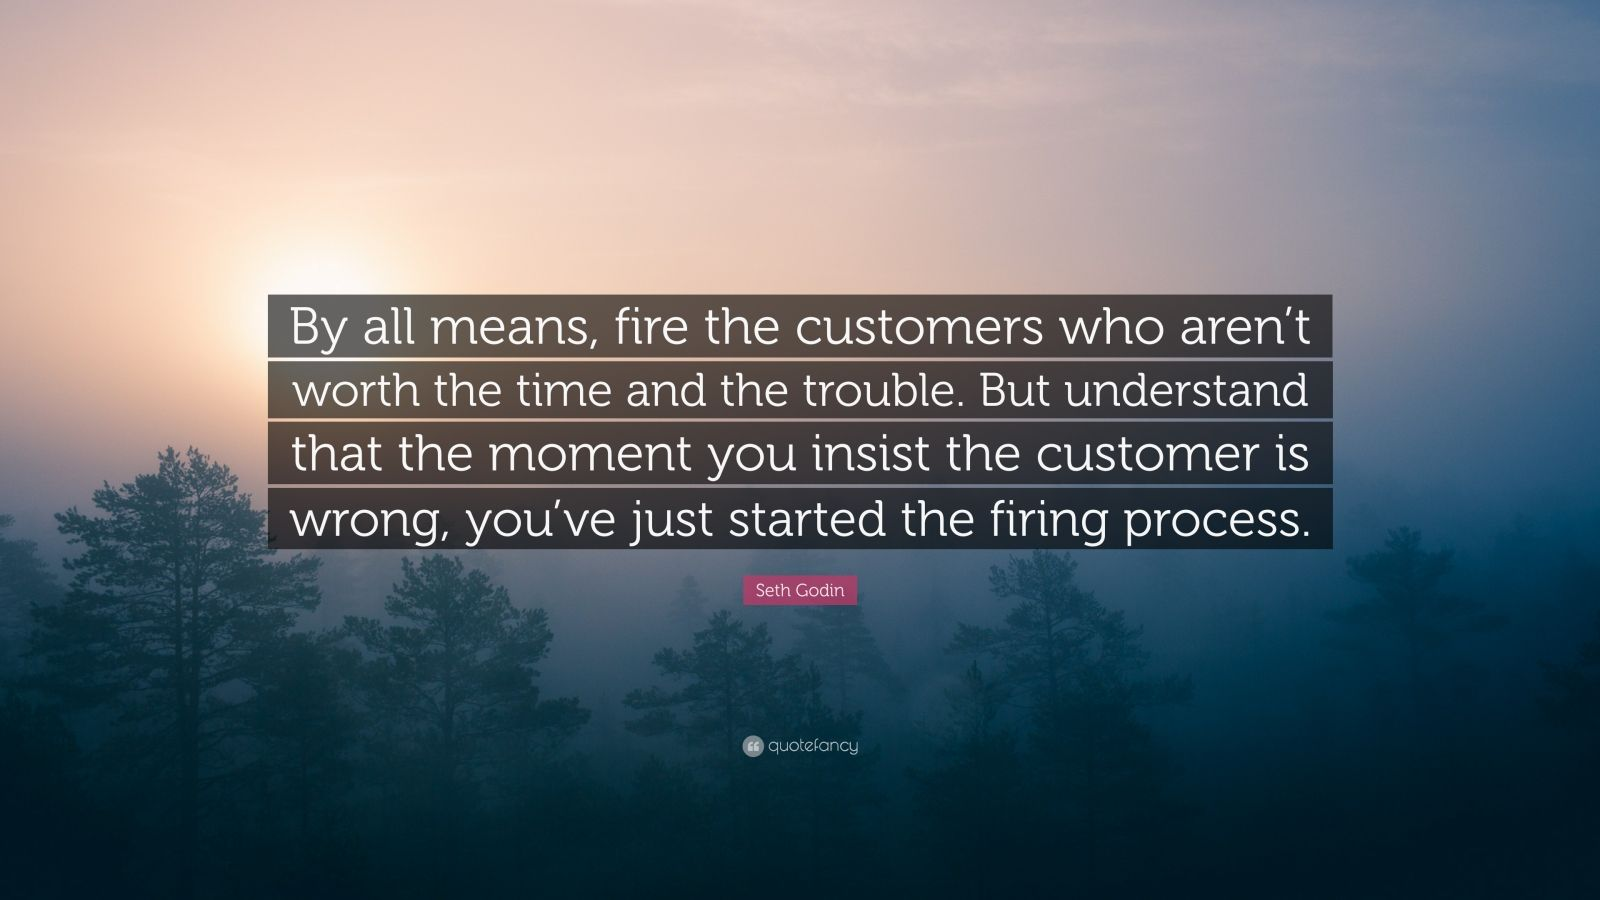 """Seth Godin Quote: """"By all means, fire the customers who aren't worth the time and the trouble. But understand that the moment you insist the customer is wrong, you've just started the firing process."""""""